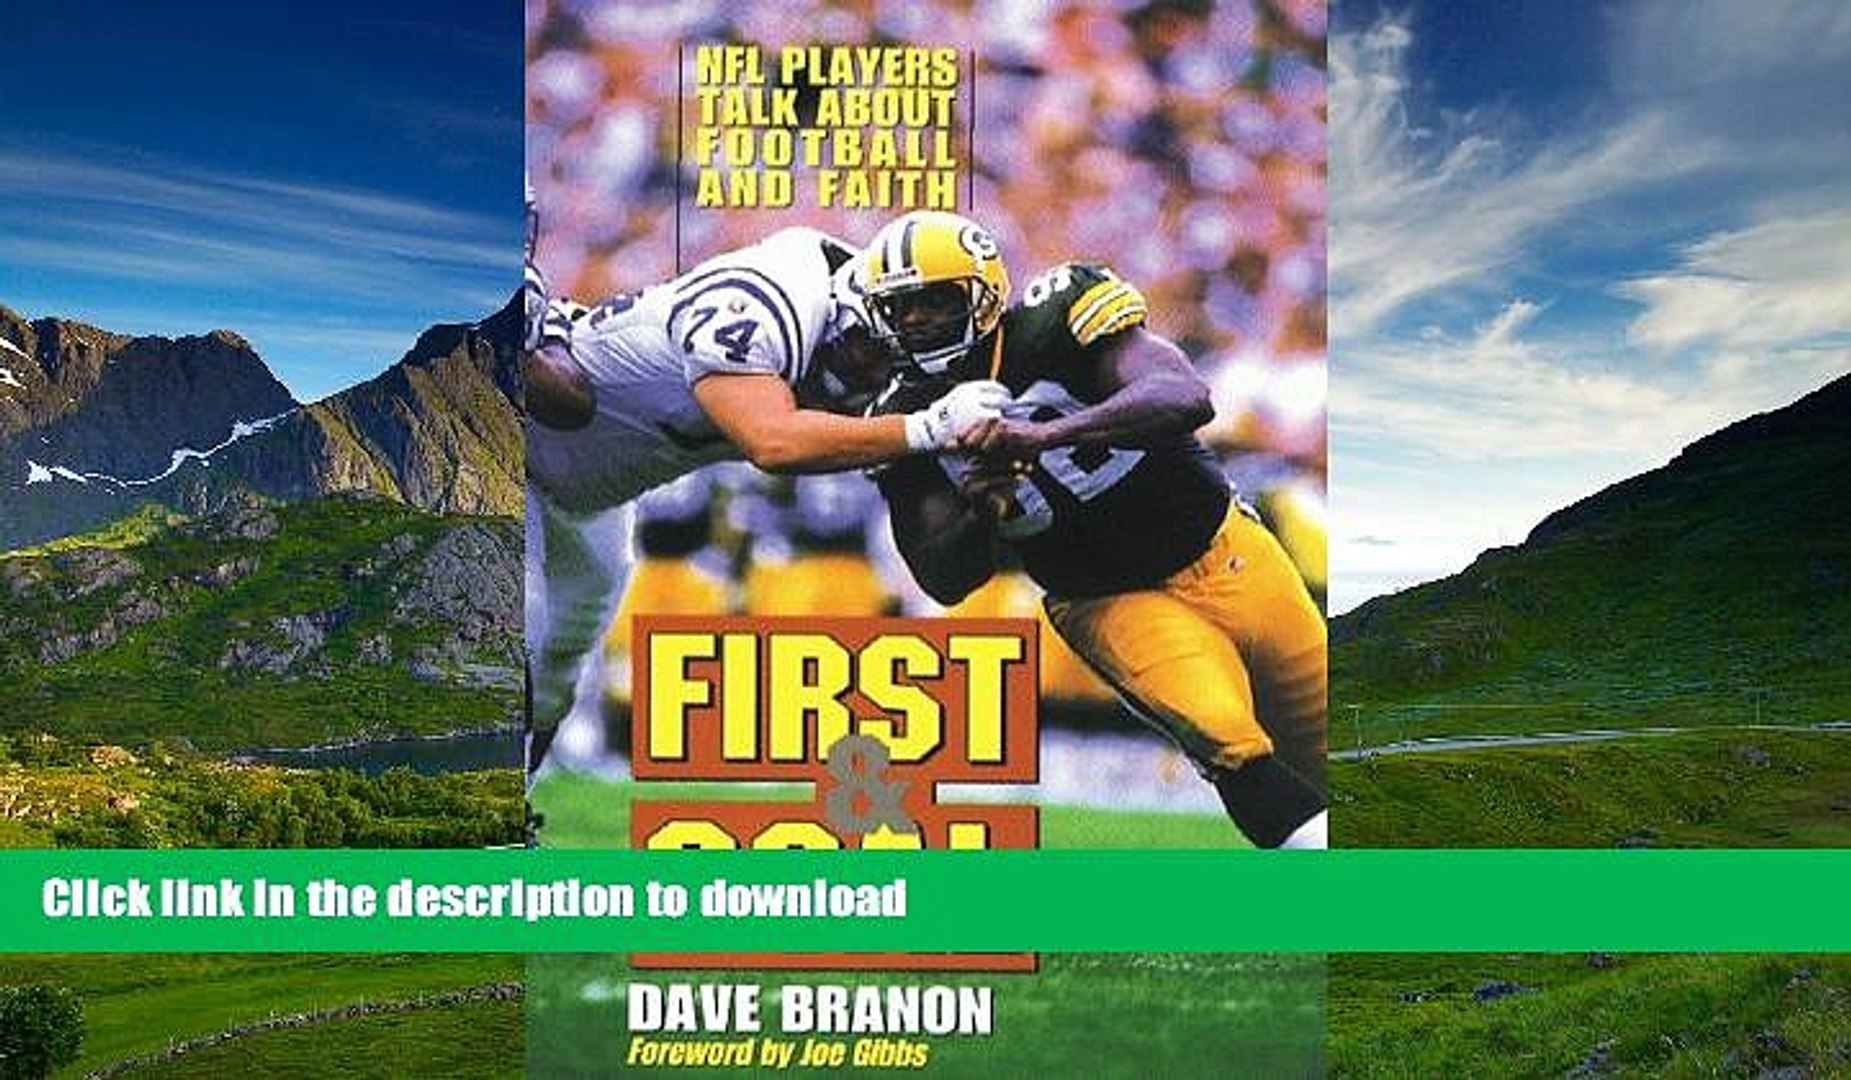 Pre Order First and Goal: NFL Players Talk about Football and Faith Full Book